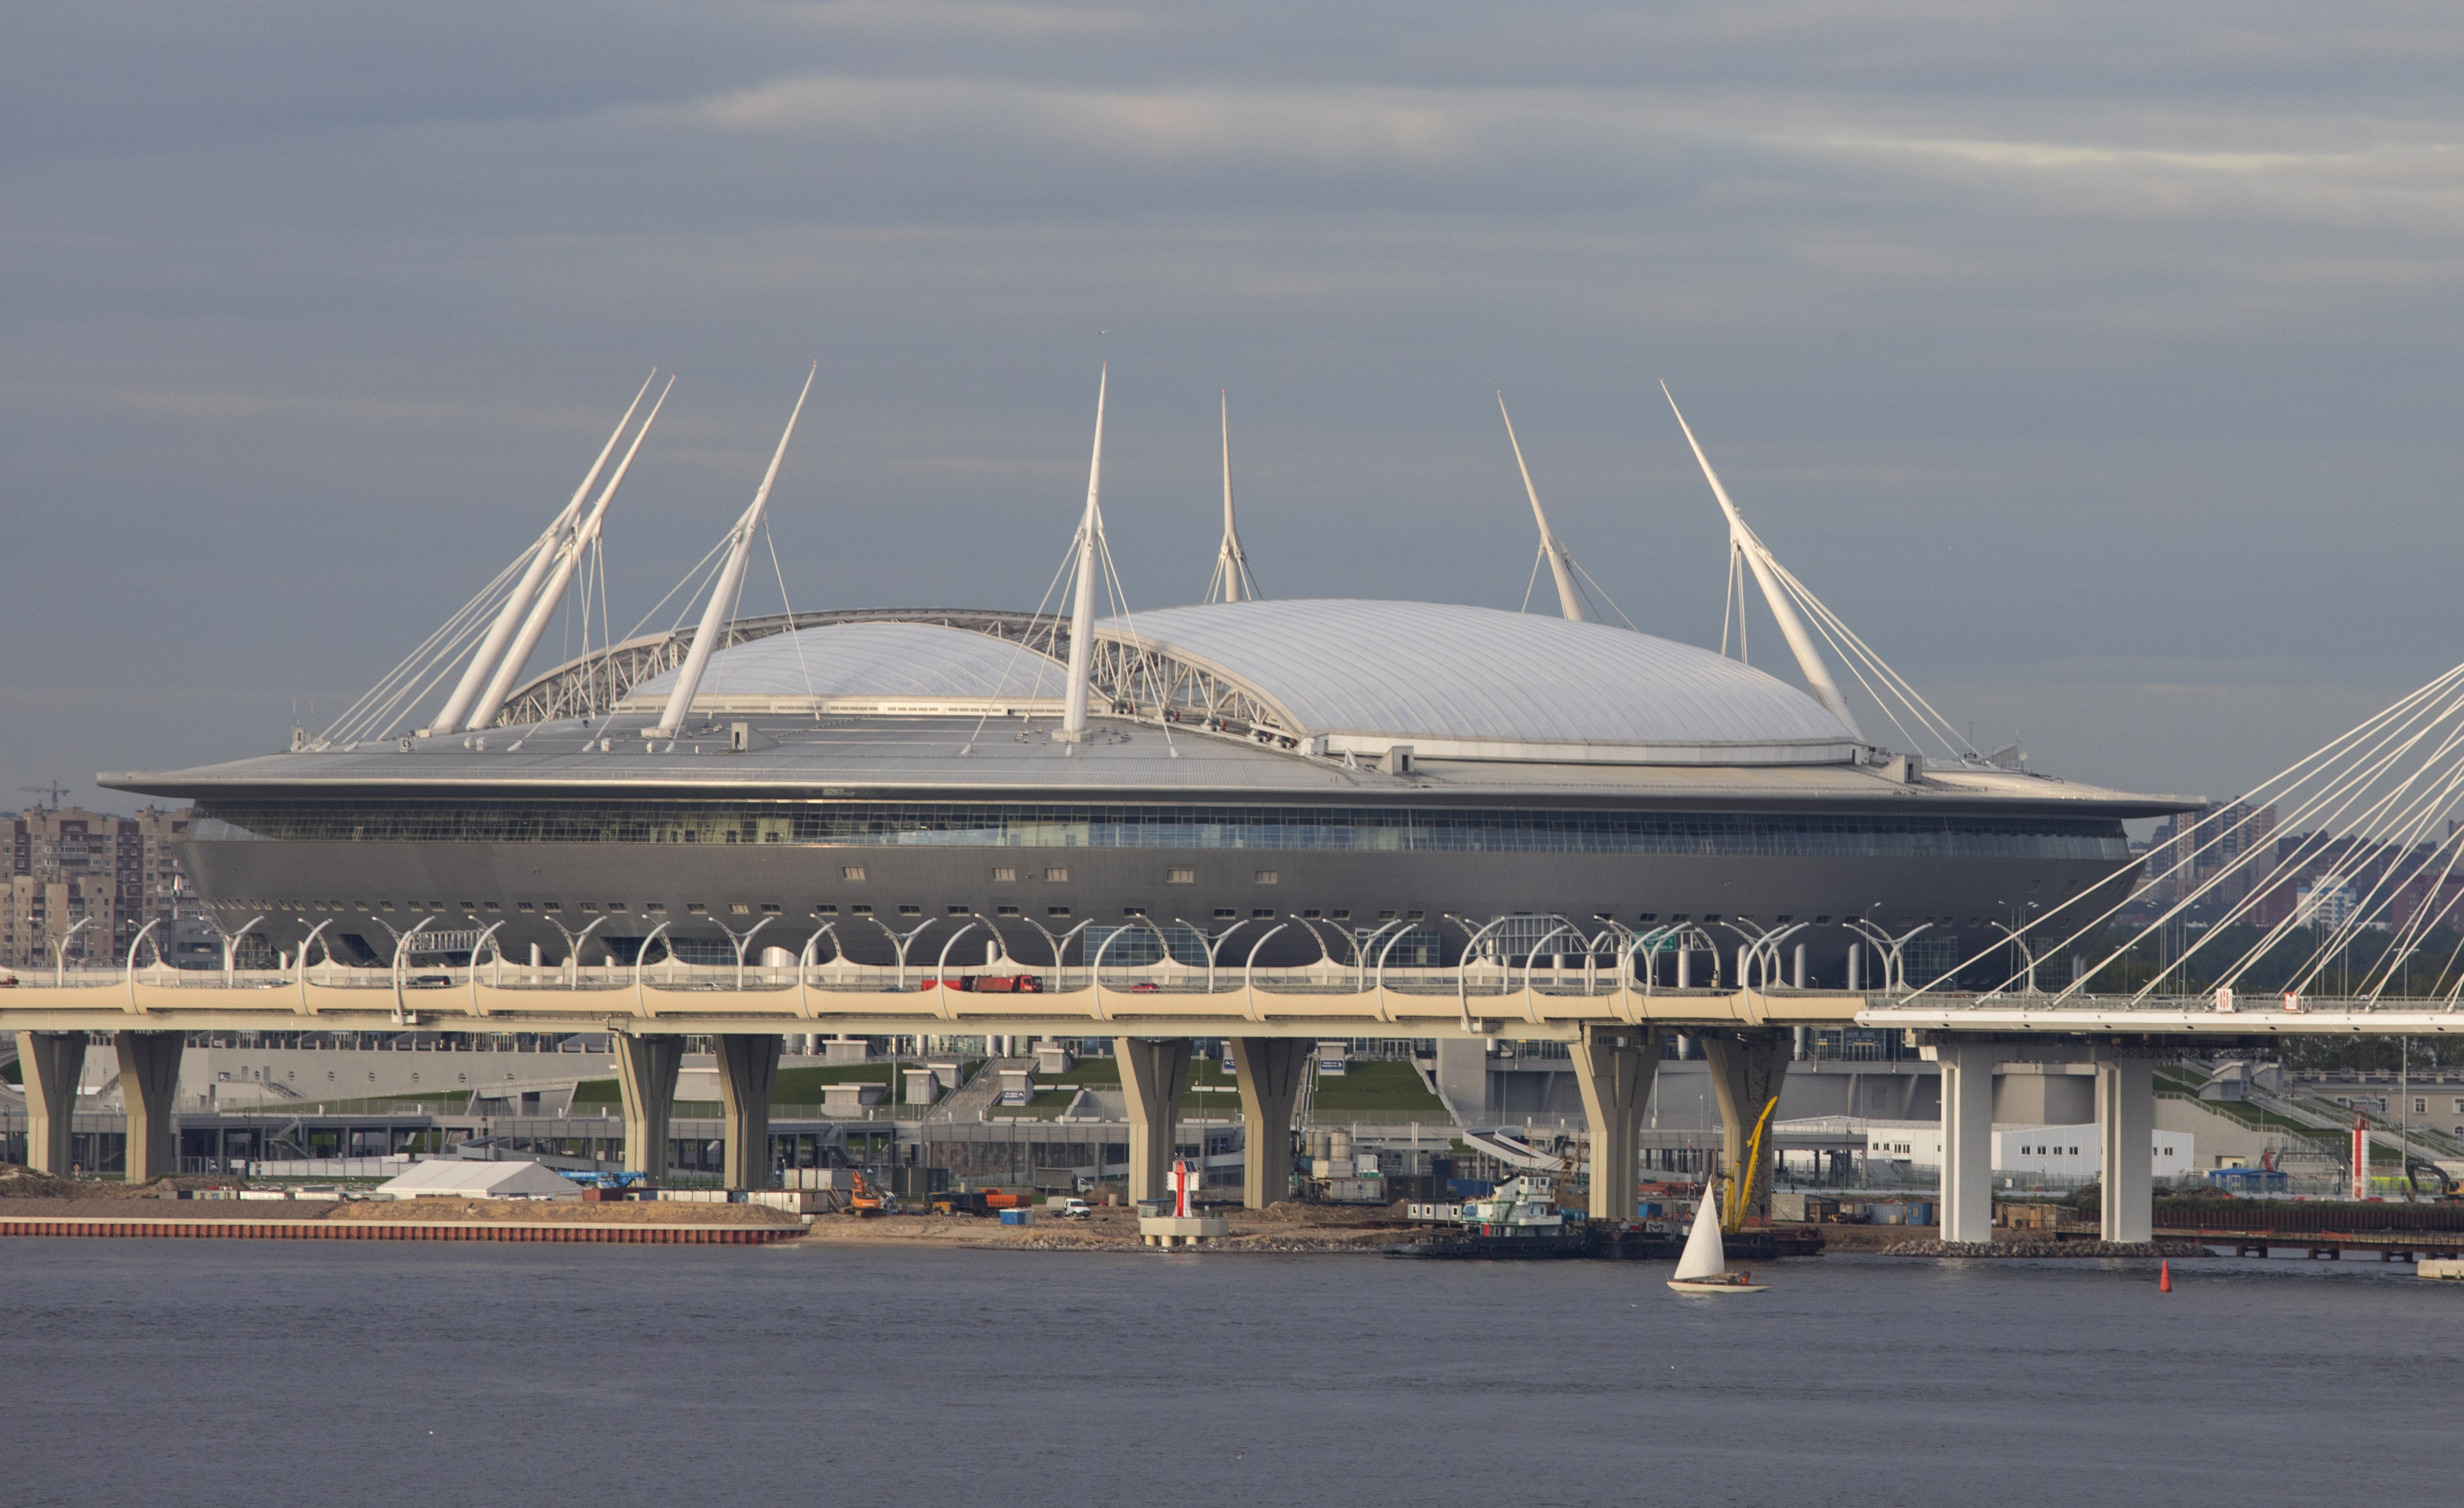 The Krestovsky Stadium is viewed looking from the Gulf of Finland in St. Petersburg, Russia, on Aug. 28, 2017. The soccer stadium has a retractable roof and is in the western part of Krestosky Island in St. Petersburg near the Gulf of Finland. The stadium will be know as Saint Petersburg Stadium during the 2018 FIFA World Cup. The stadium is near the new Gazprom headquarters. (AP Photo/Jon Elswick)